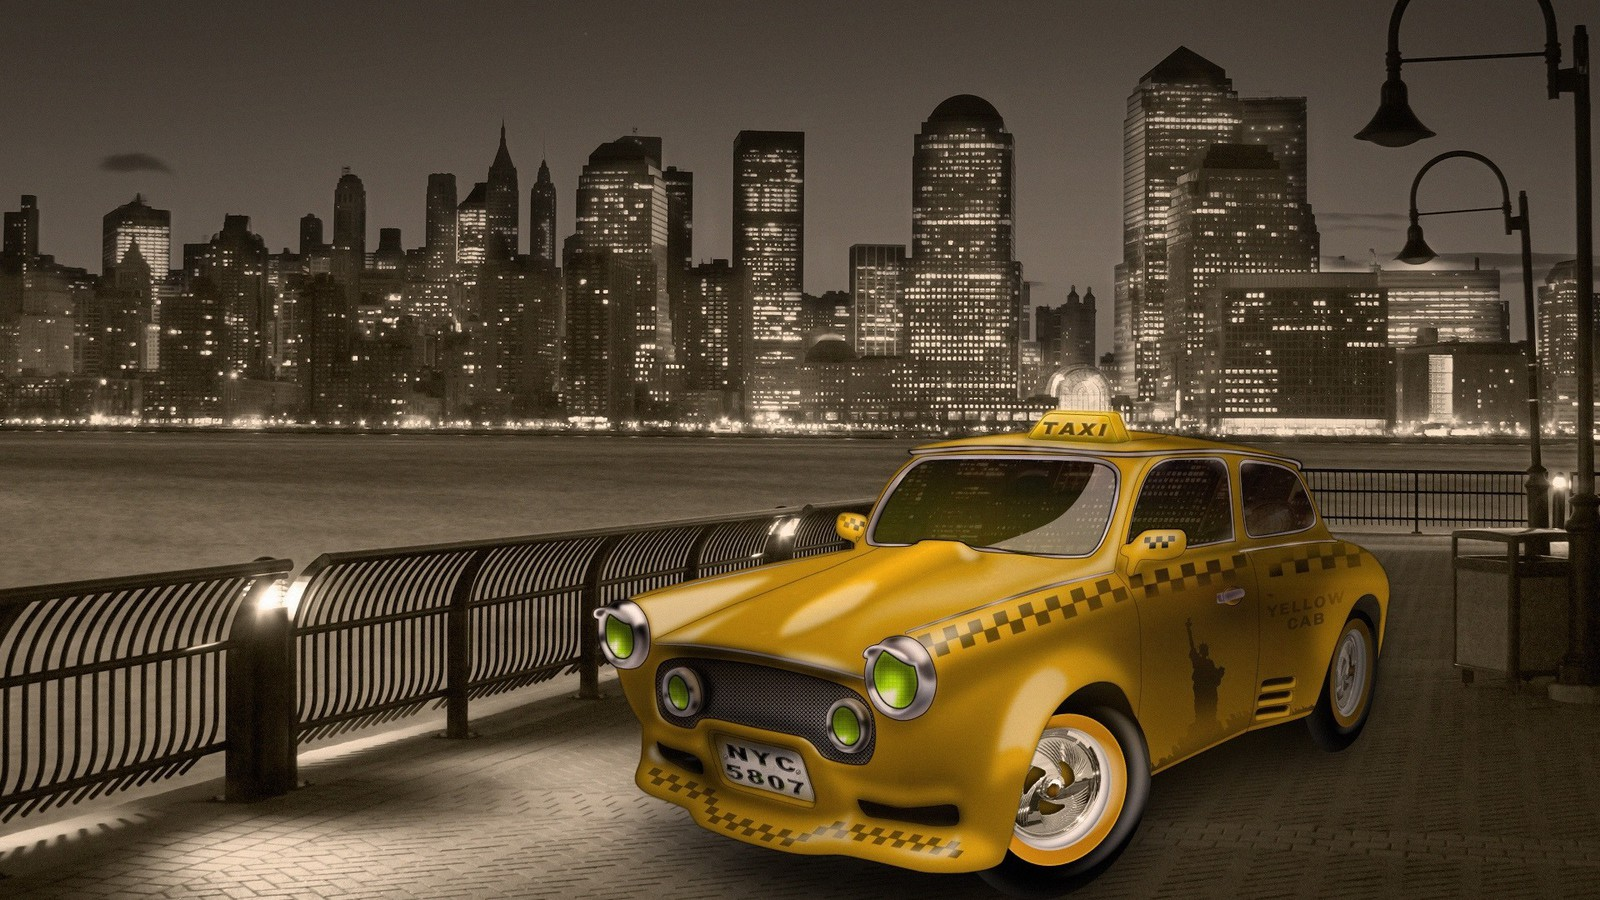 new york city taxi cab wallpaper 7443 pc en. Black Bedroom Furniture Sets. Home Design Ideas